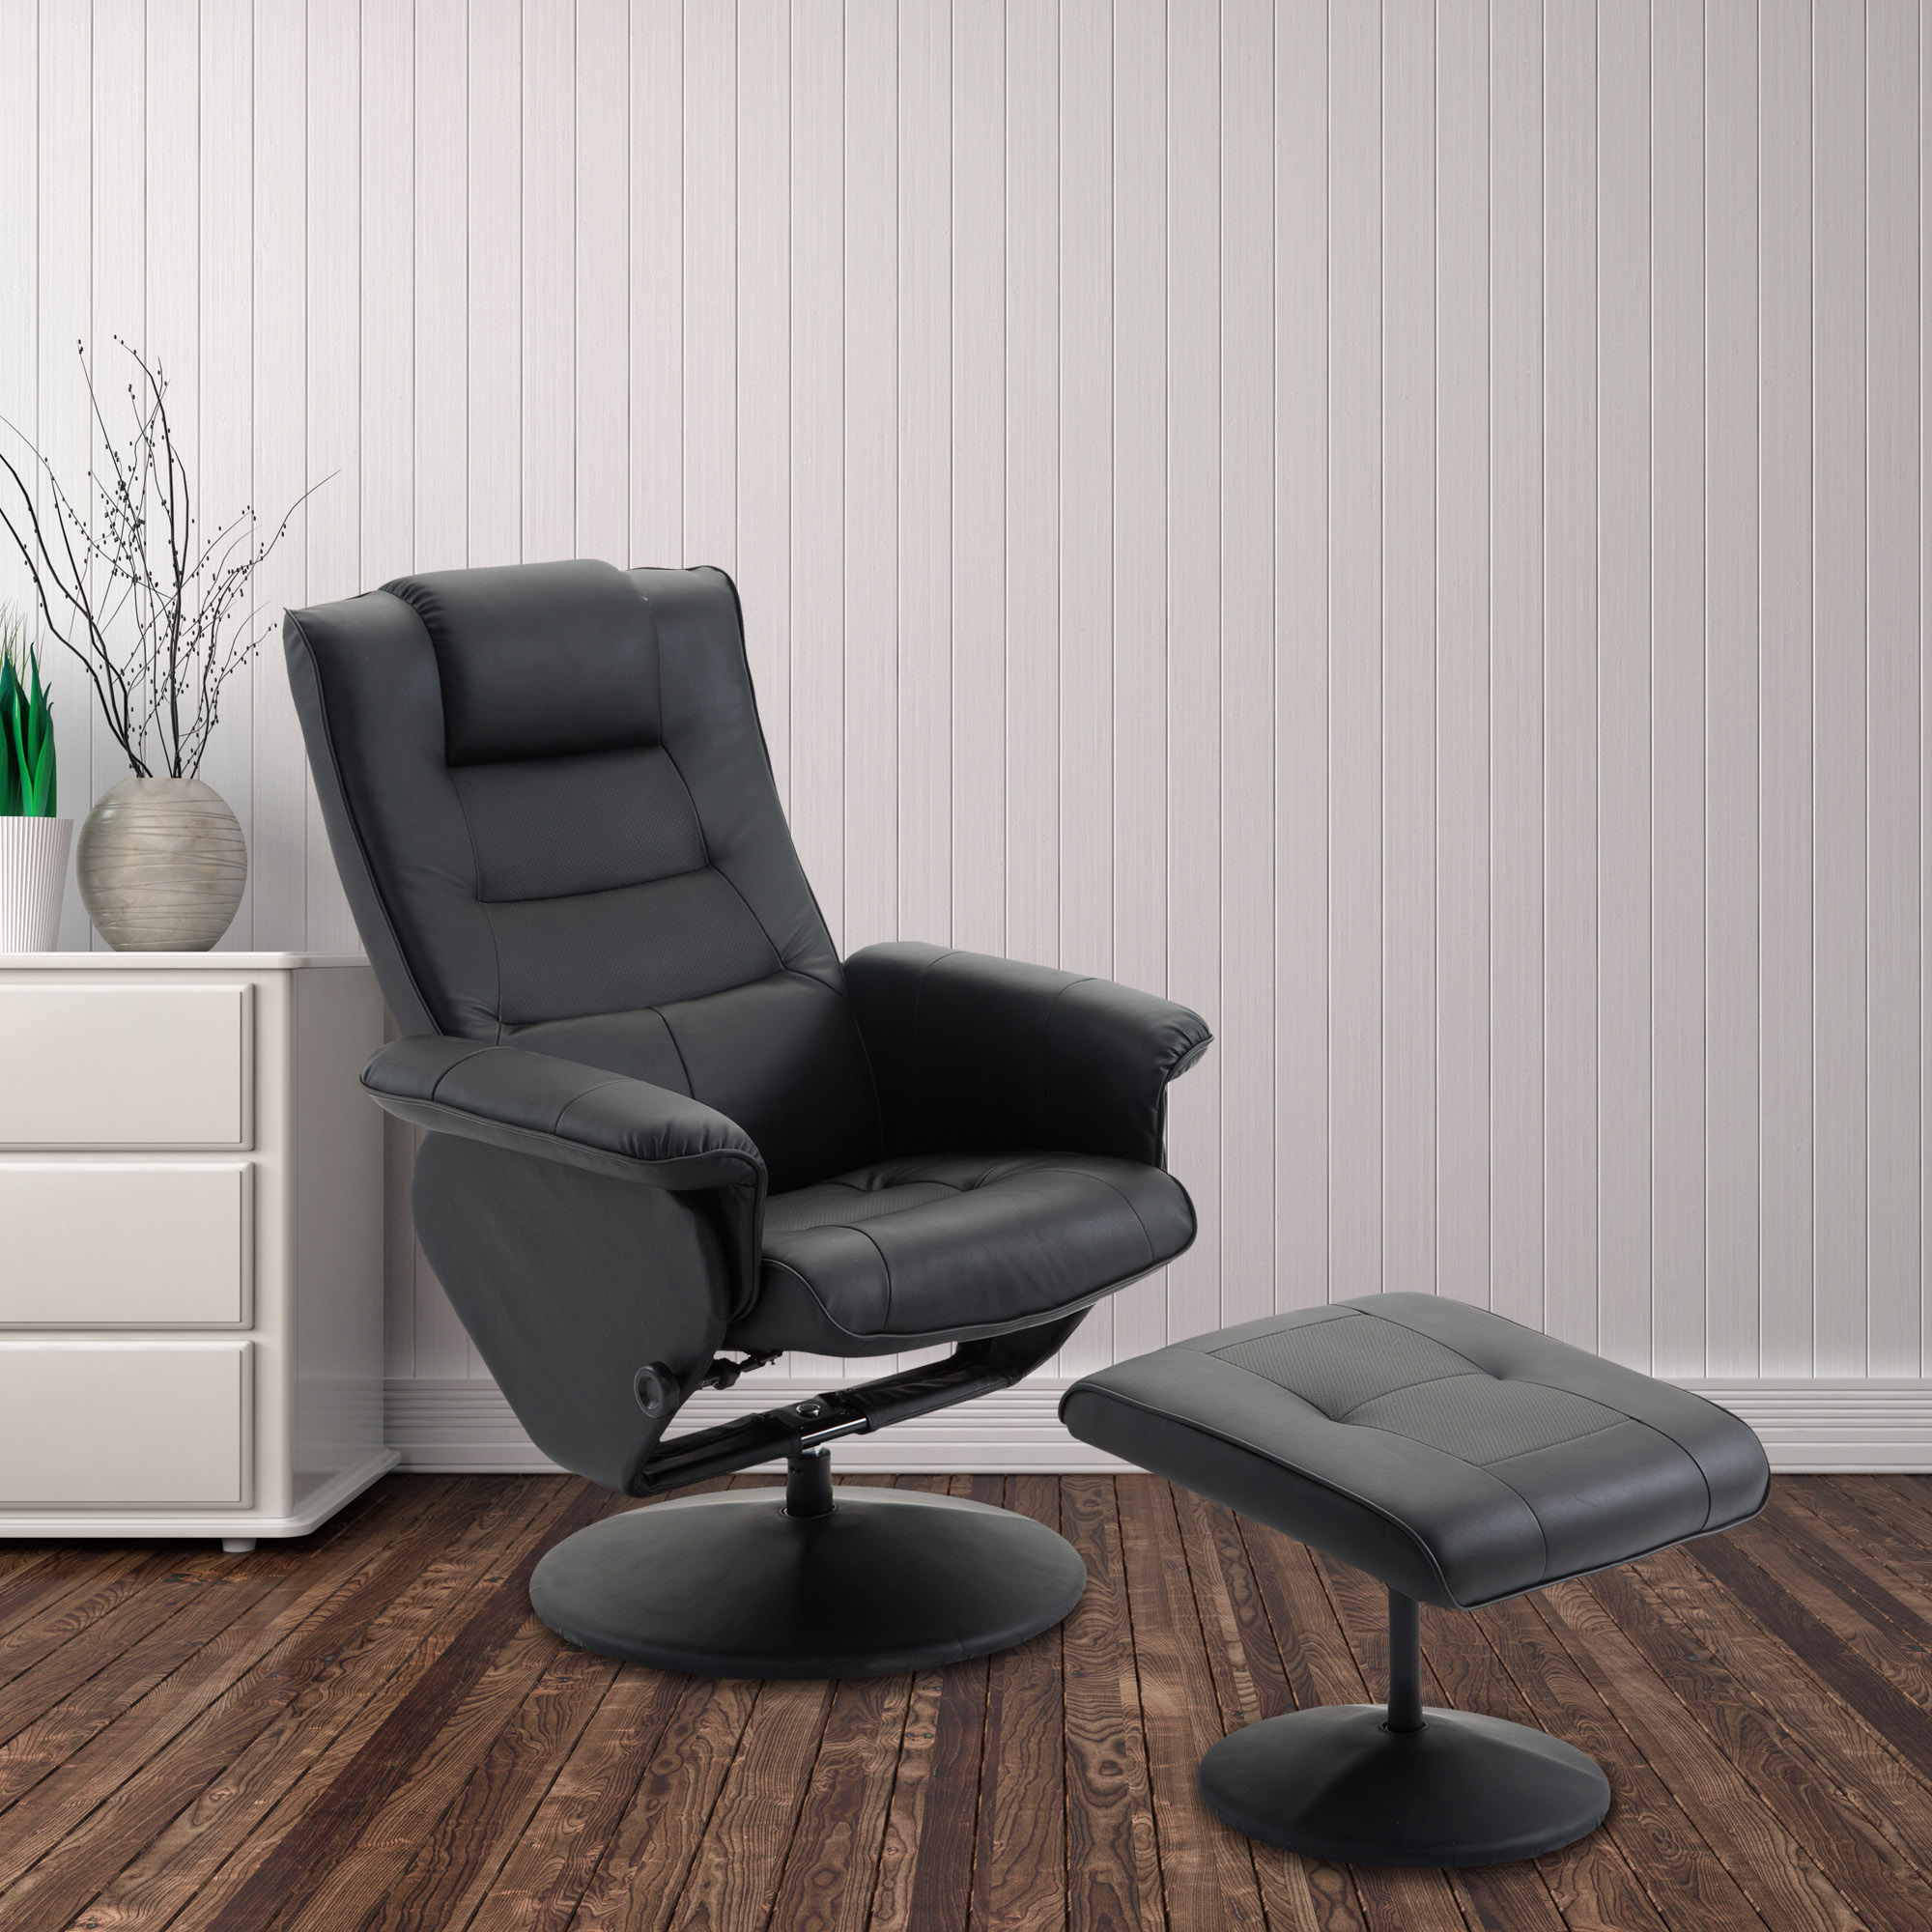 Cloud Mountain PU Leather Recliner Chair and Ottoman Leisure